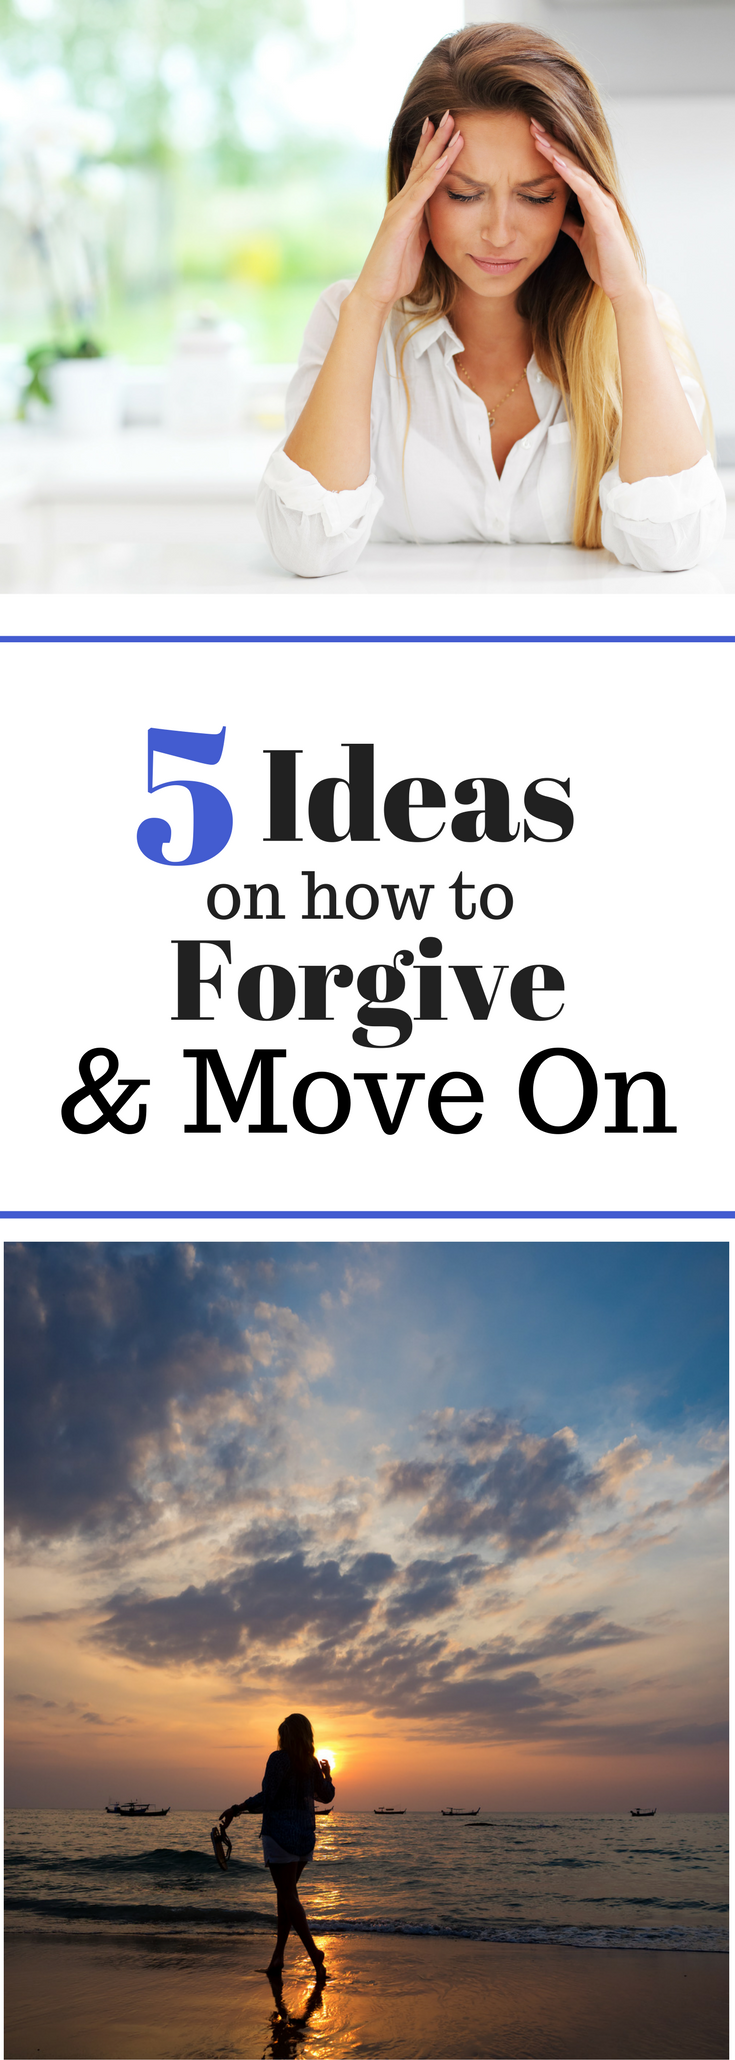 how to forgive others and move on